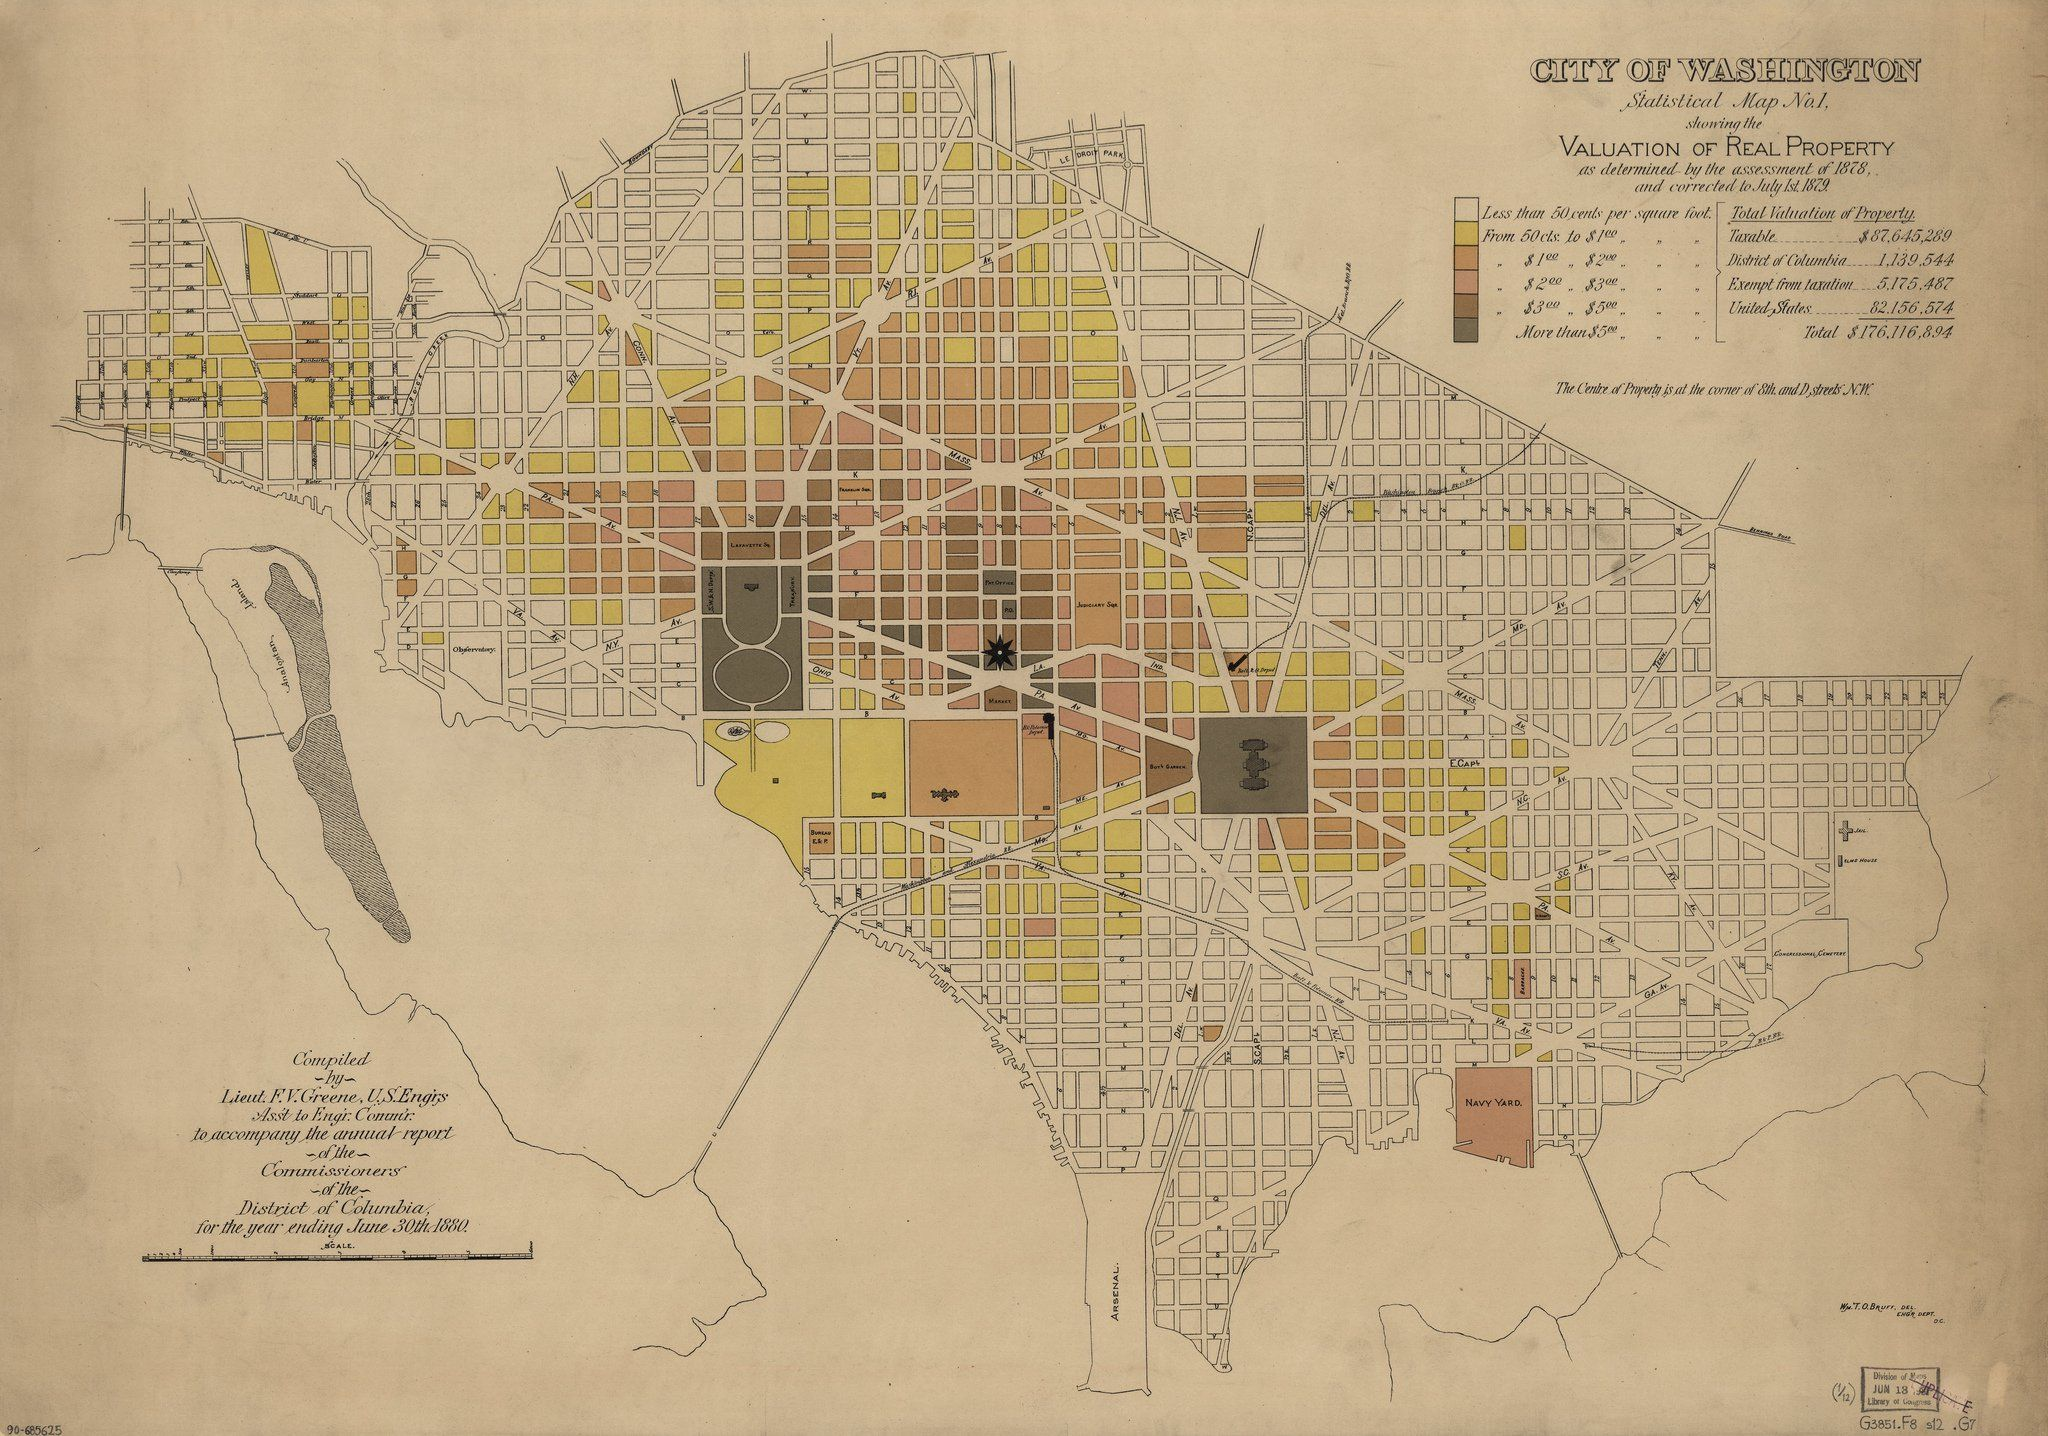 City Of Washington Property Values Map From